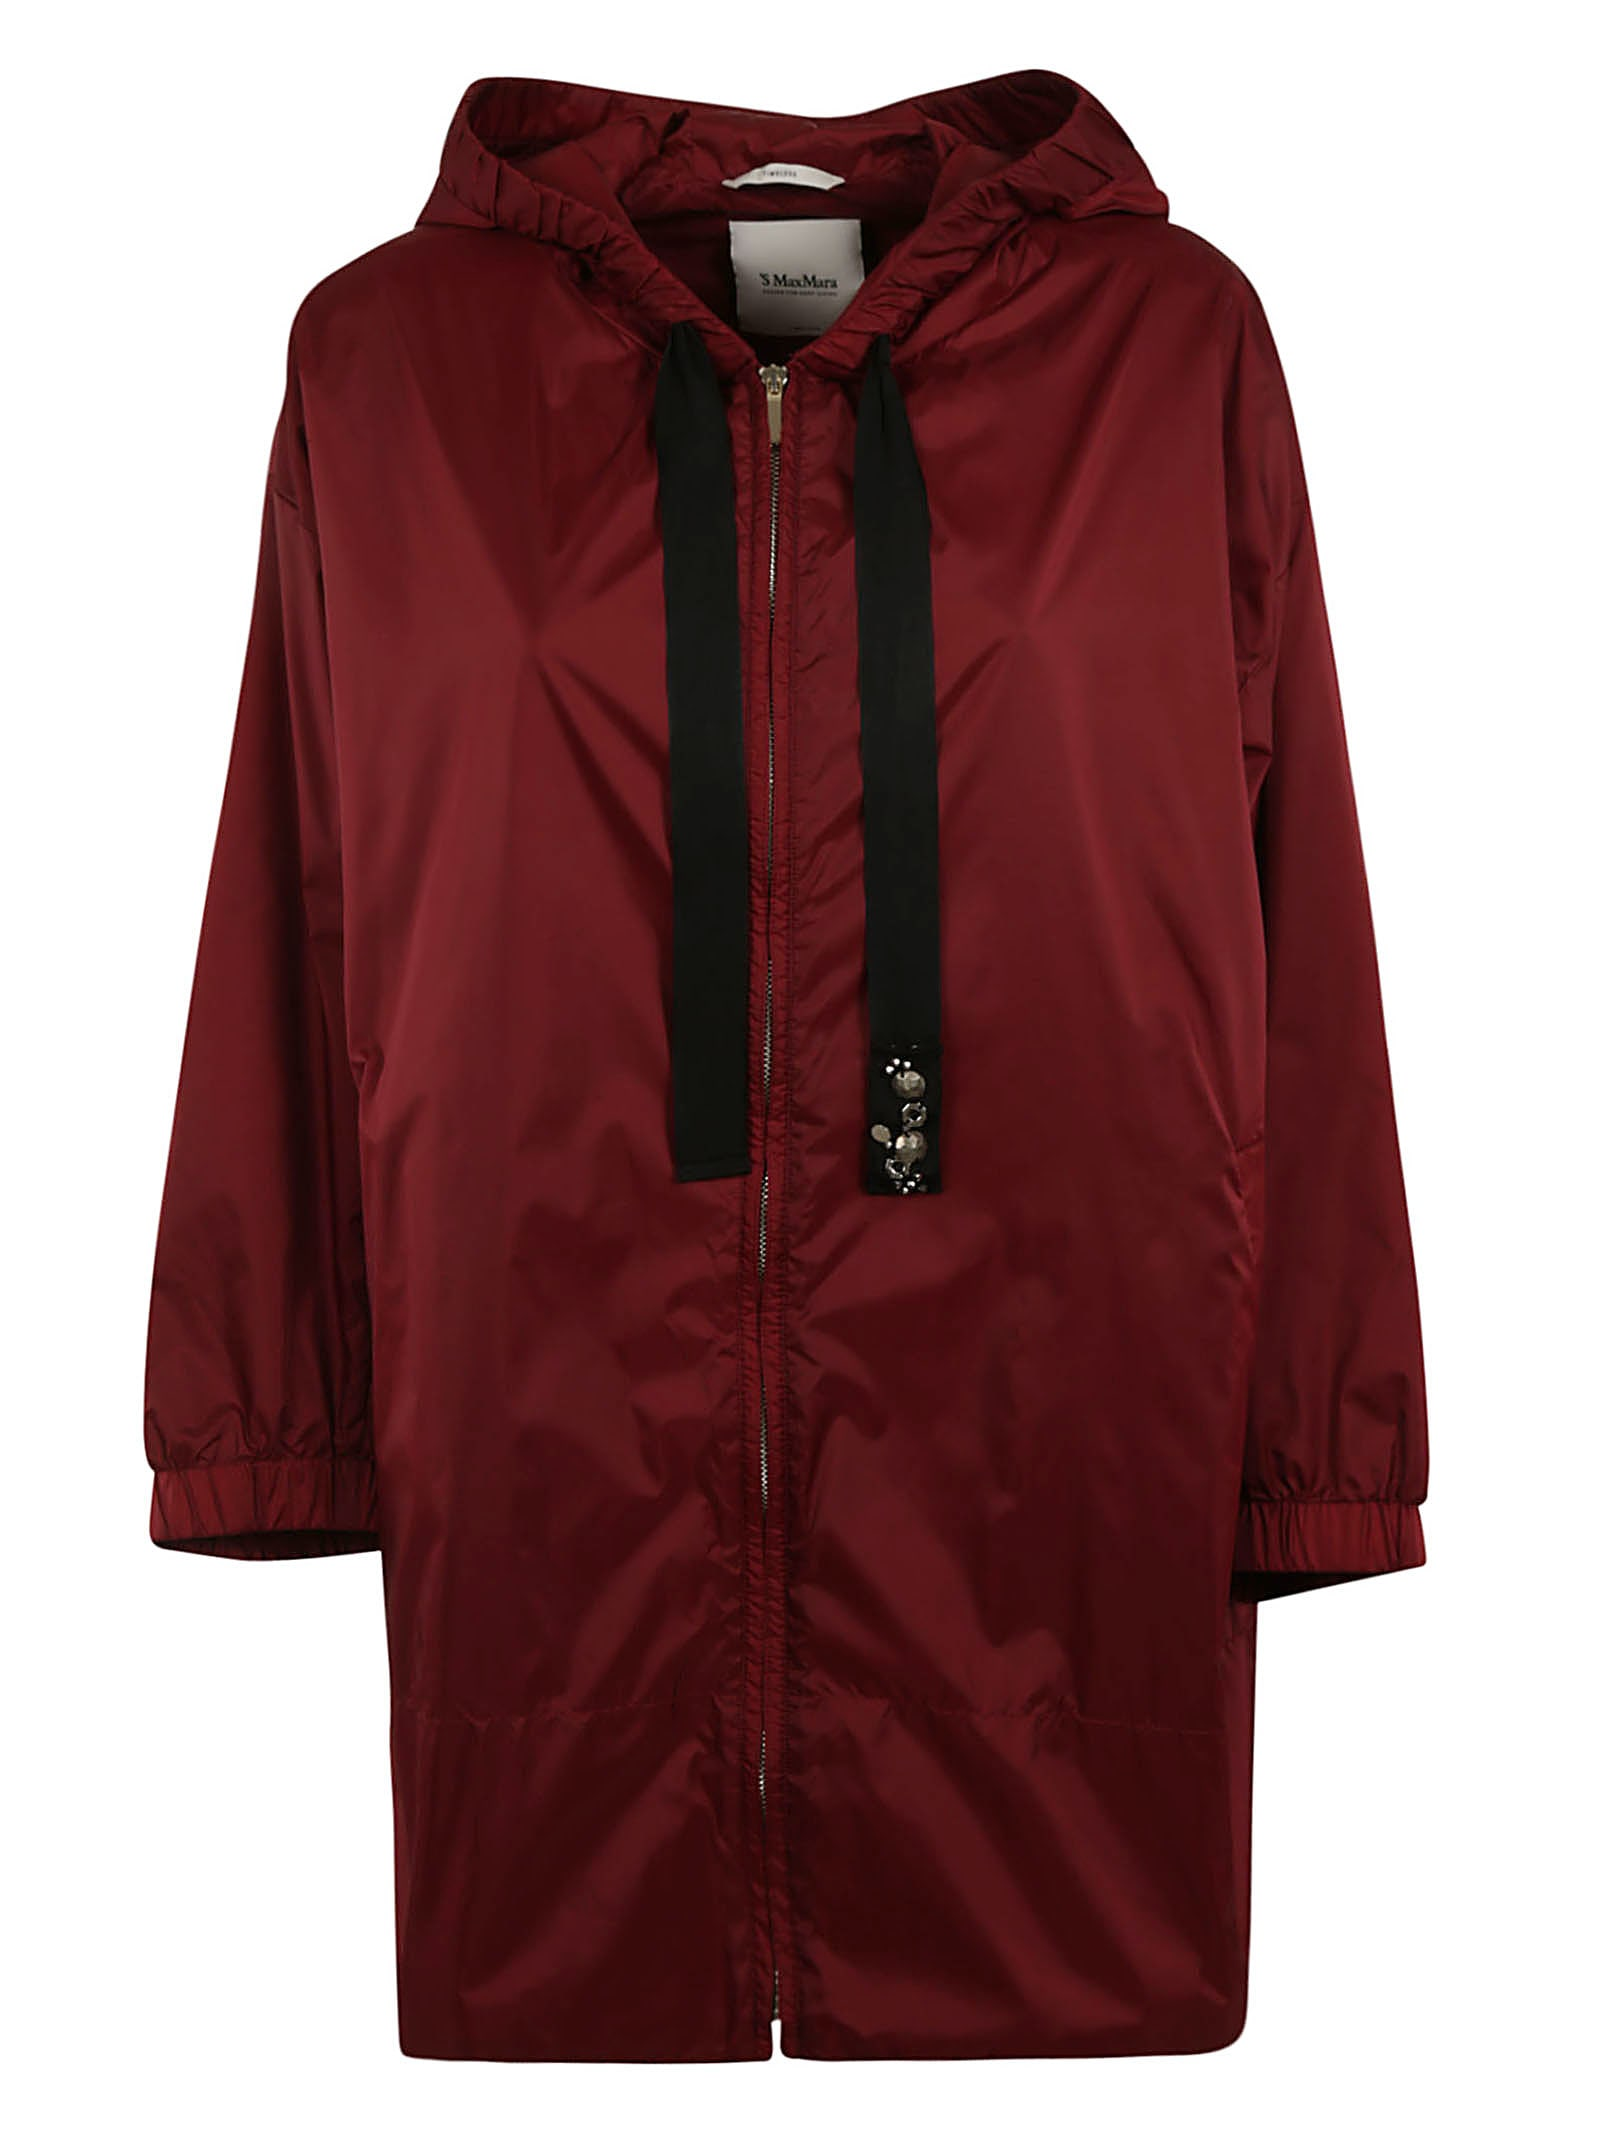 S Max Mara Here is The Cube Zipped Parka